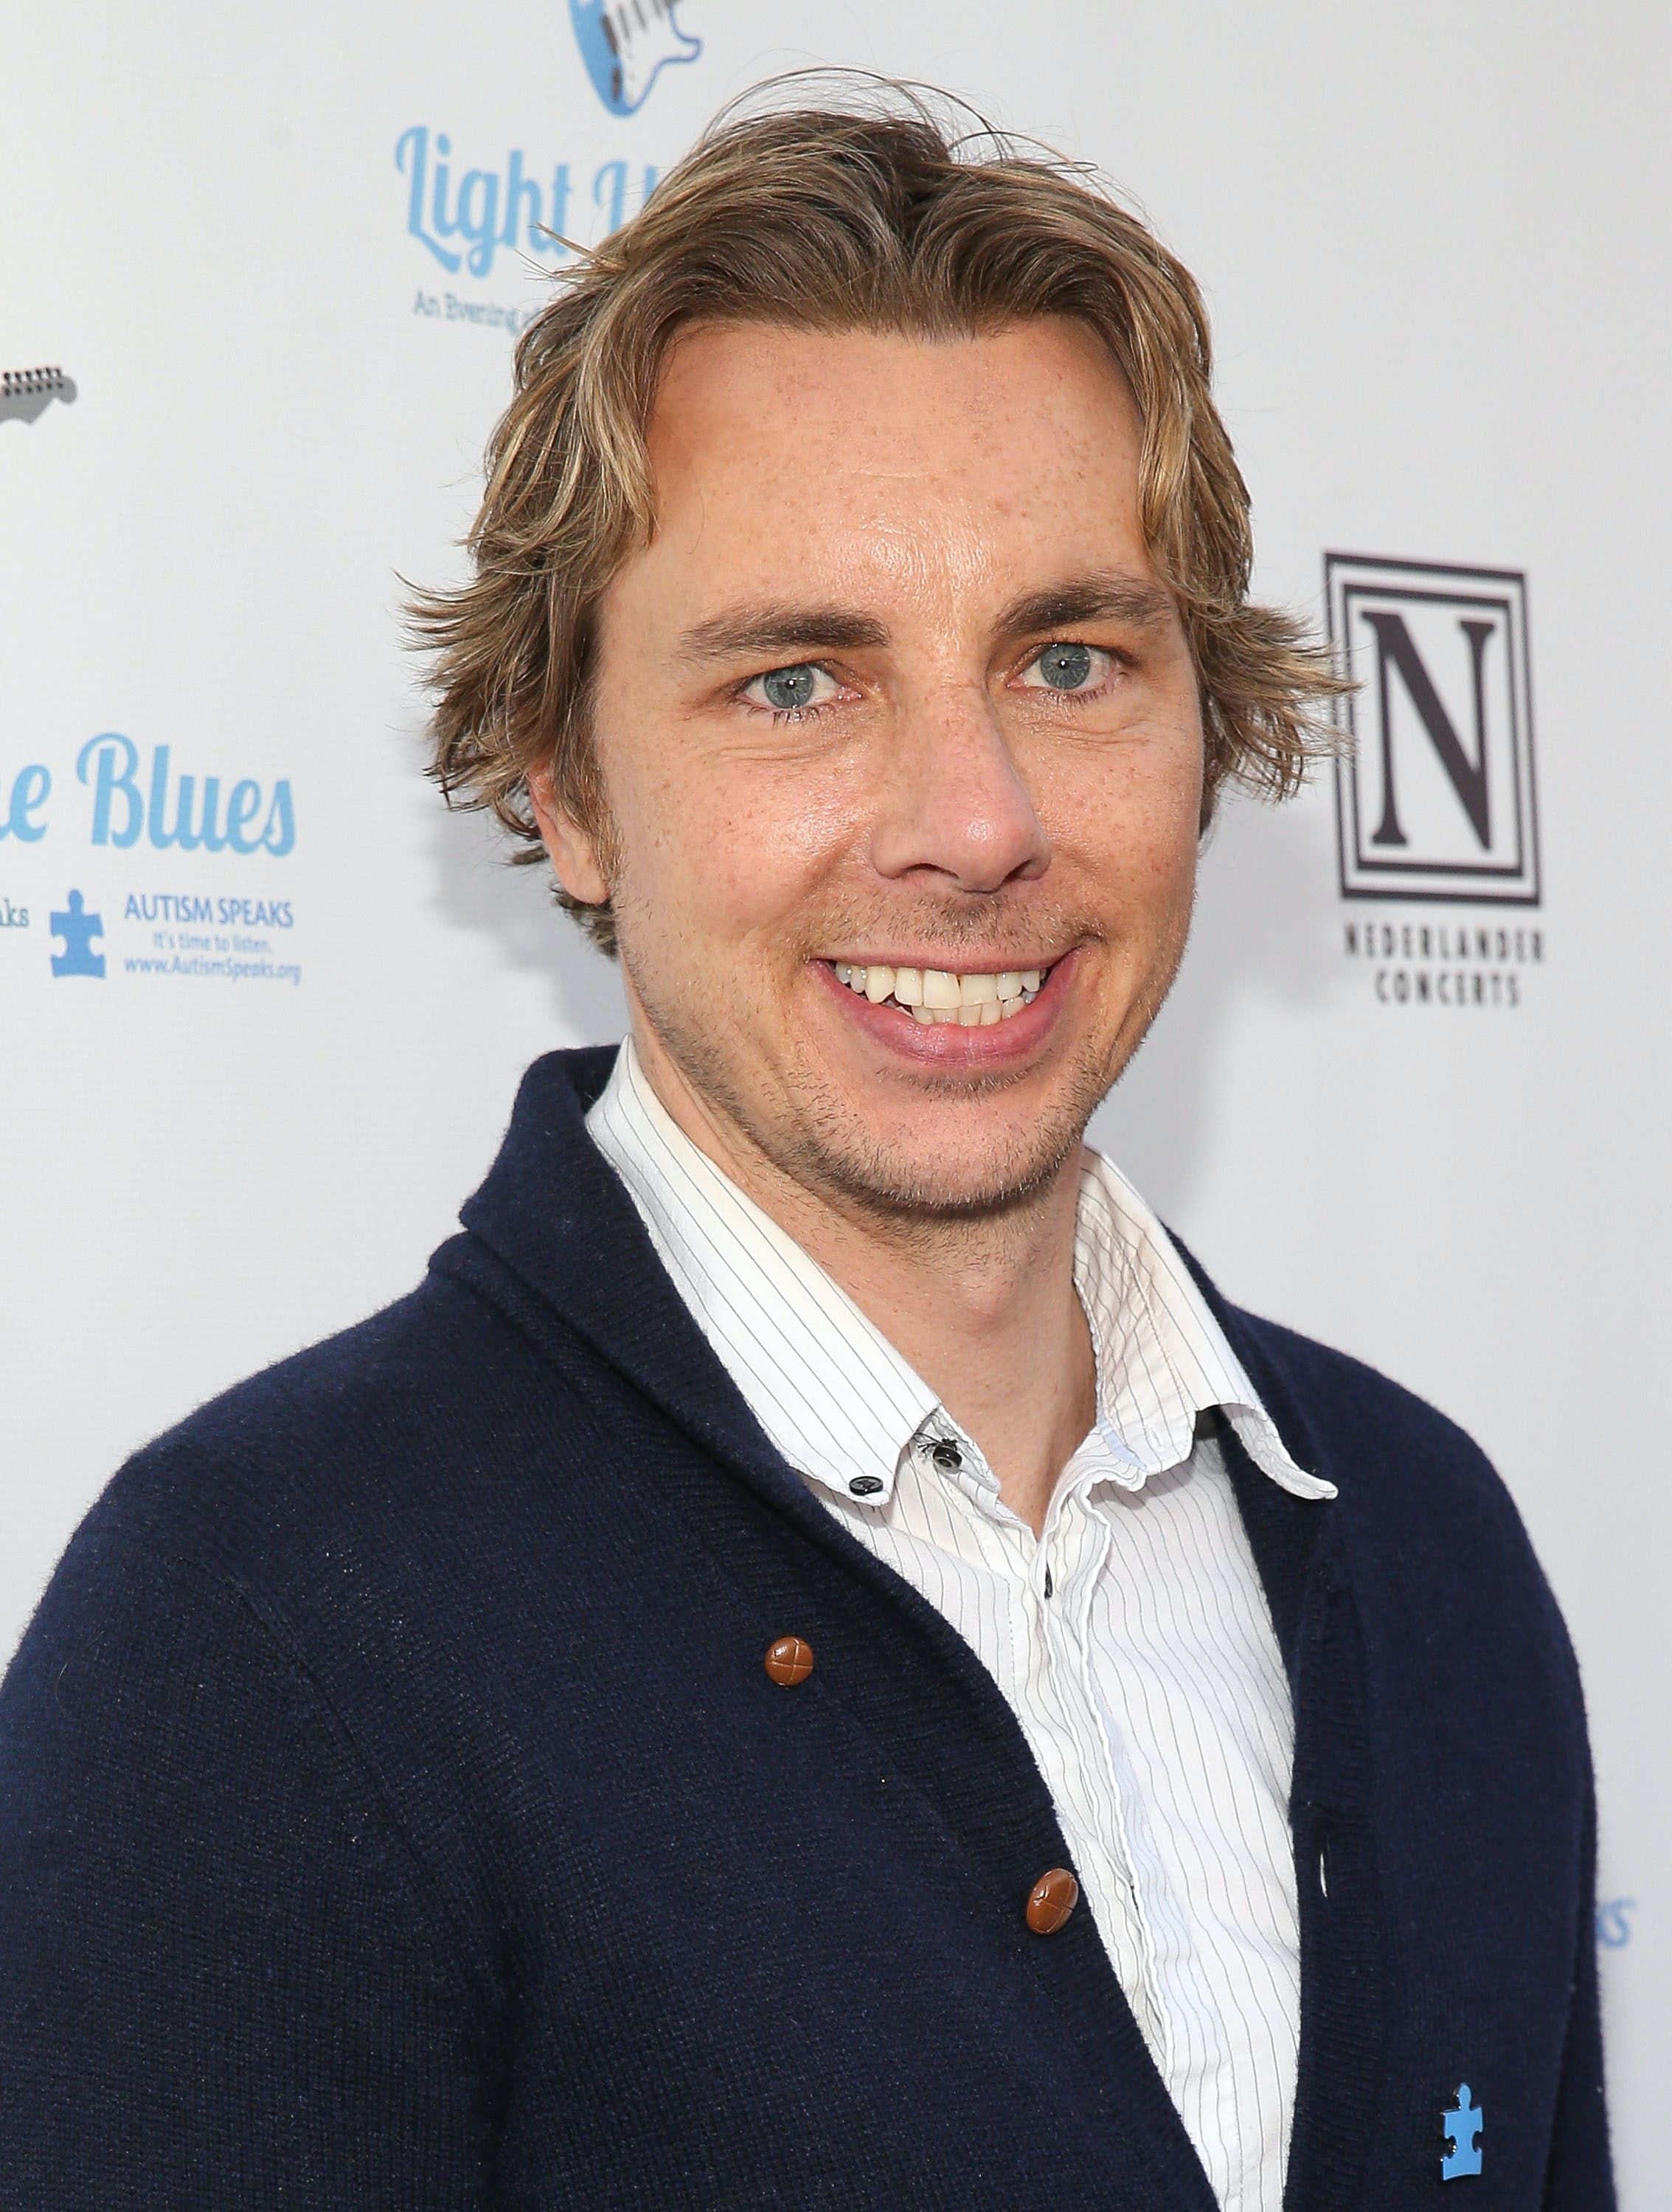 dax shepard hatedax shepard wife, dax shepard kinopoisk, dax shepard hate, dax shepard director, dax shepard laugh, dax shepard kristen bell daughter, dax shepard son, dax shepard tattoo, dax shepard movies, dax shepard net worth, dax shepard zach braff, dax shepard instagram, dax shepard father, dax shepard natal chart, dax shepard wikipedia, dax shepard saturday night live, dax shepard top gear, dax shepard on ellen